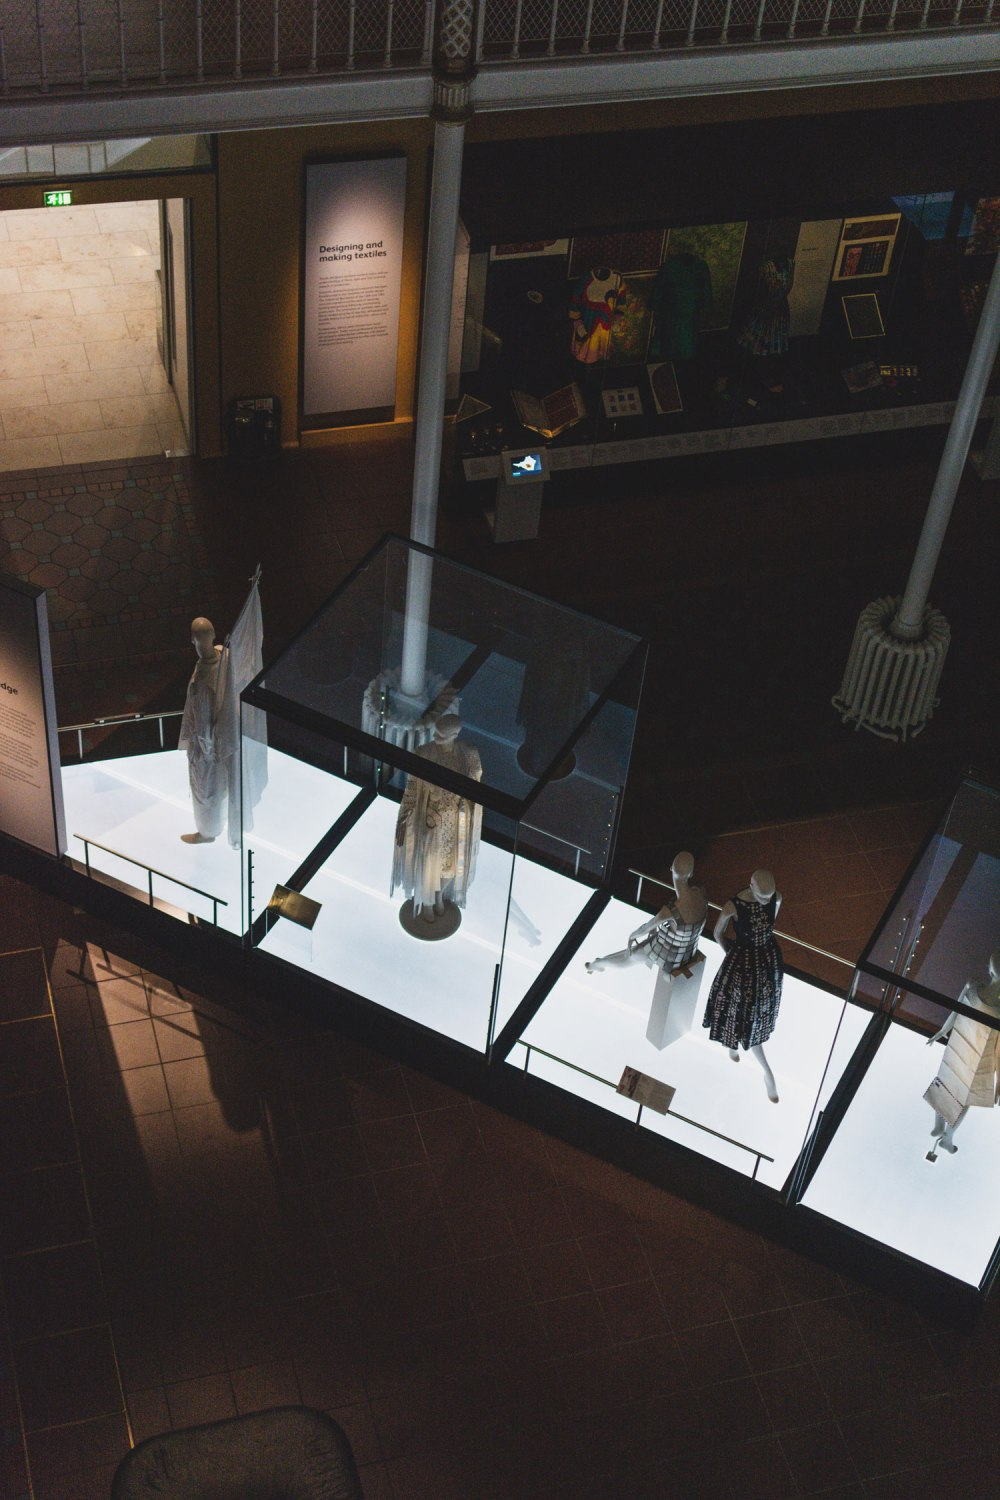 National-Museum-of-Scotland-Edinburgh (10)